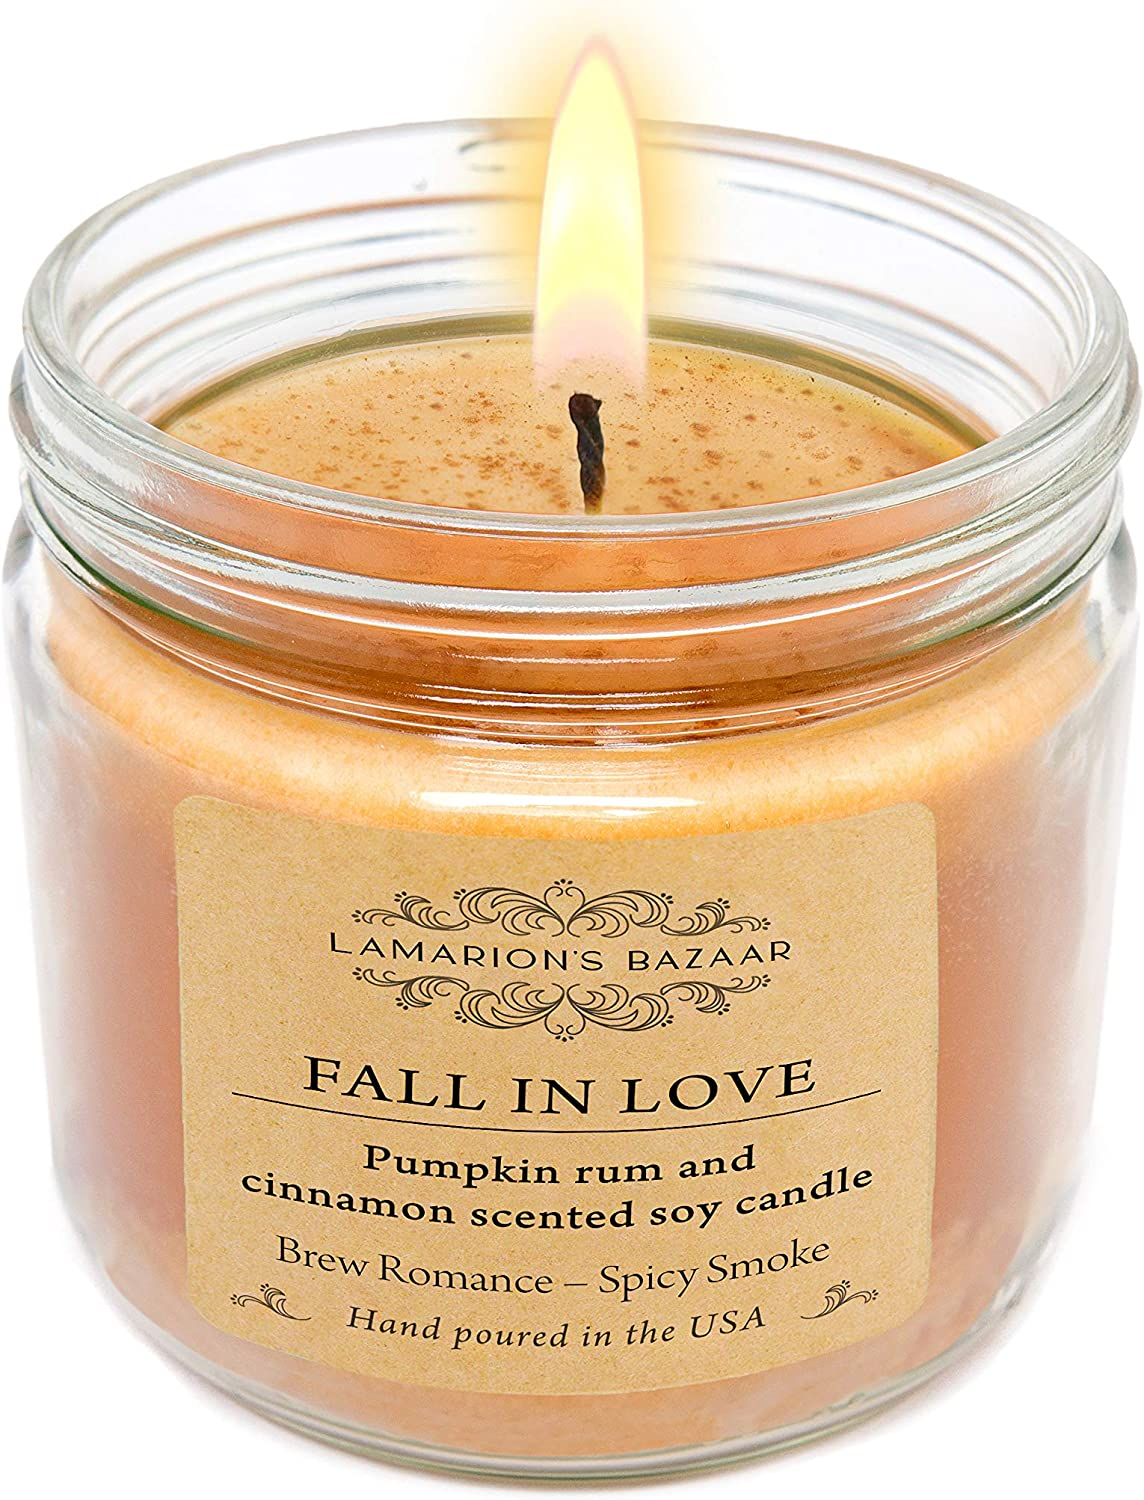 Lamarion's Bazaar Fall in Love - Pumpkin Rum and Cinnamon - Large Soy Candle in a Kraft Box